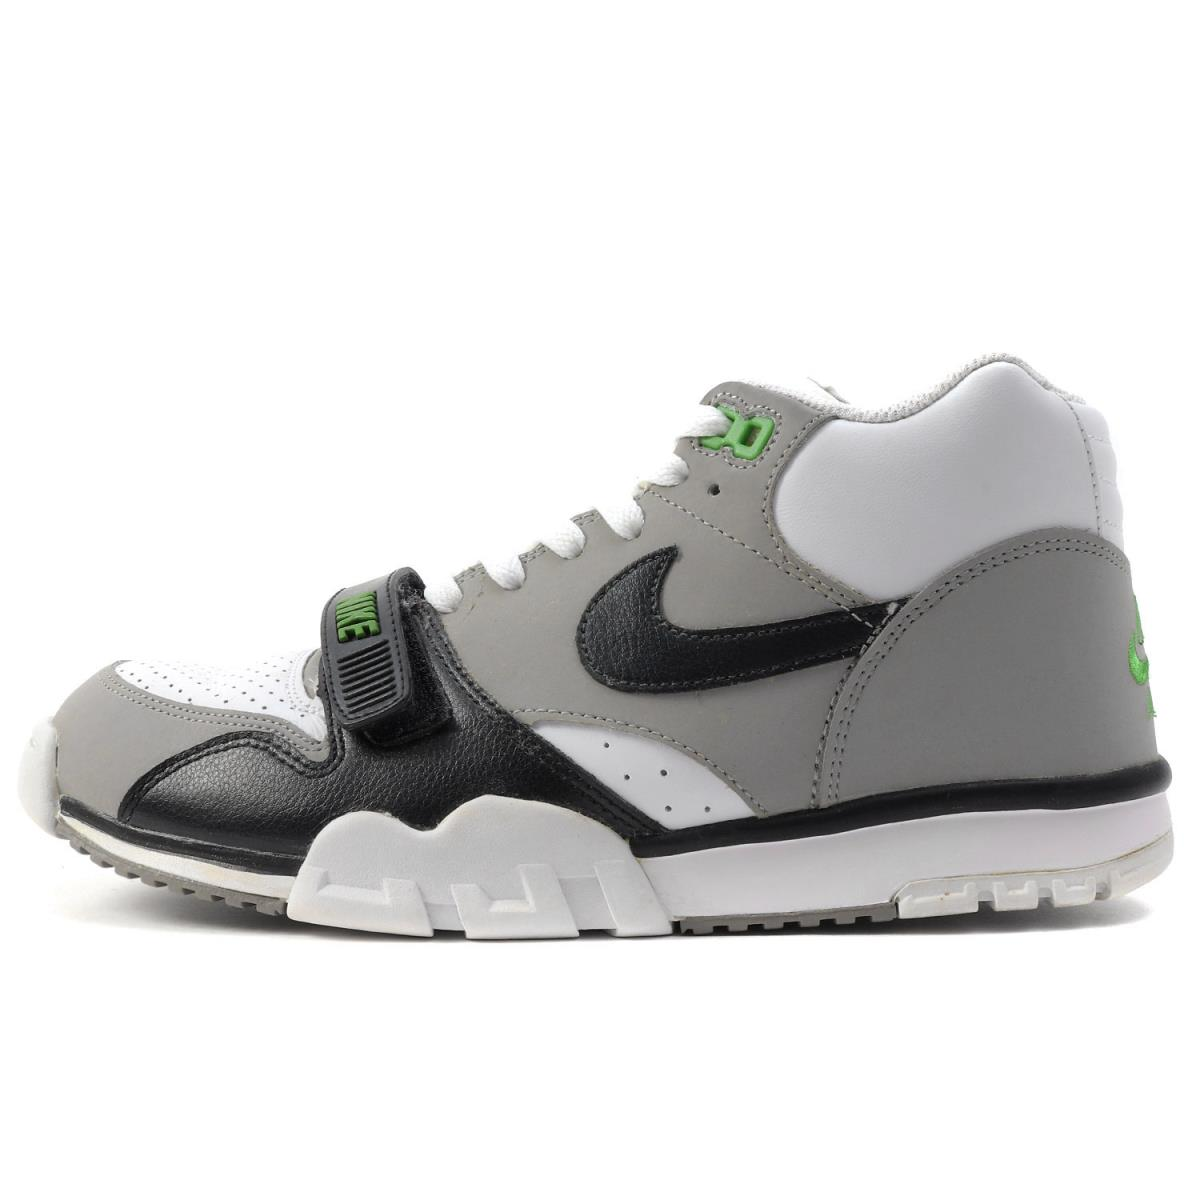 huge discount 70411 299b8 NIKE (Nike) AIR TRAINER 1 MID PREMIUM (317,553-100) white X black  US9.5(27.5cm)